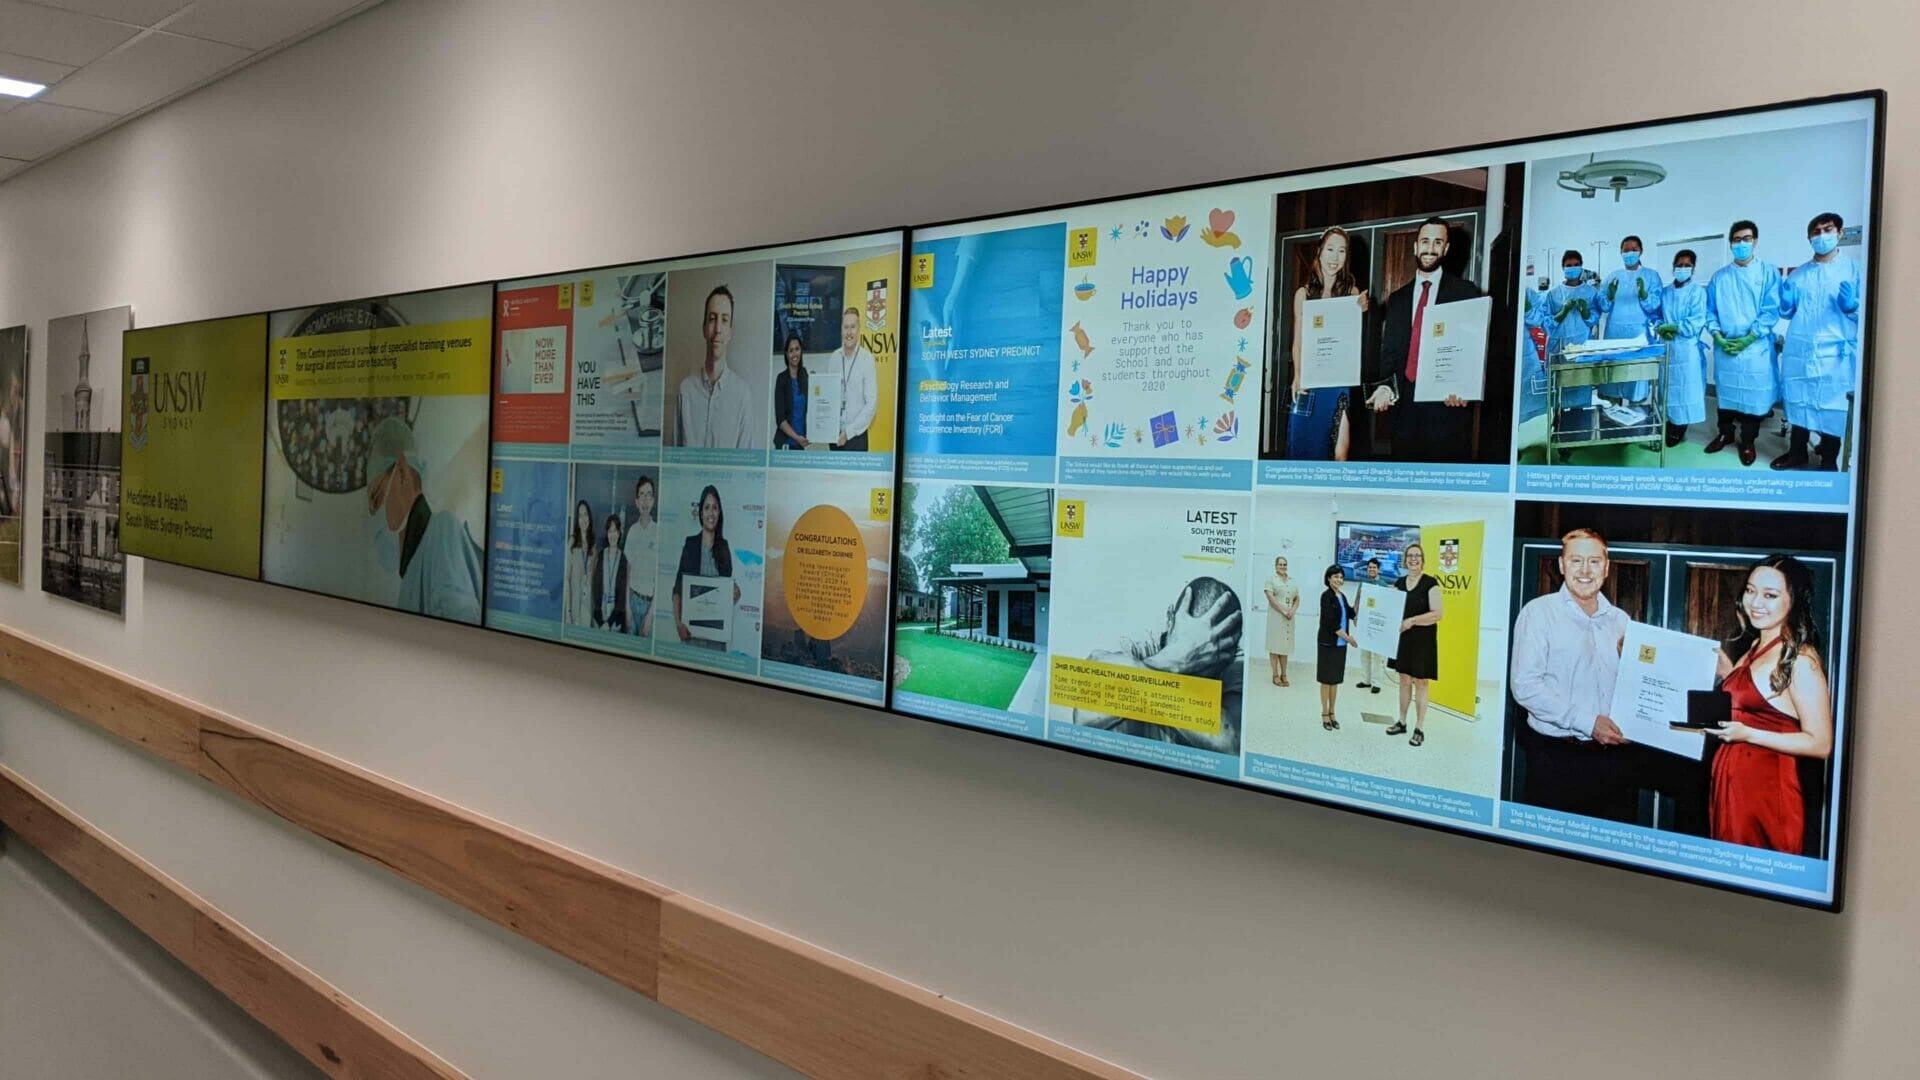 Video Wall & Social Wall – UNSW Medicine & Health South West Sydney Precinct 4×1 Video Wall